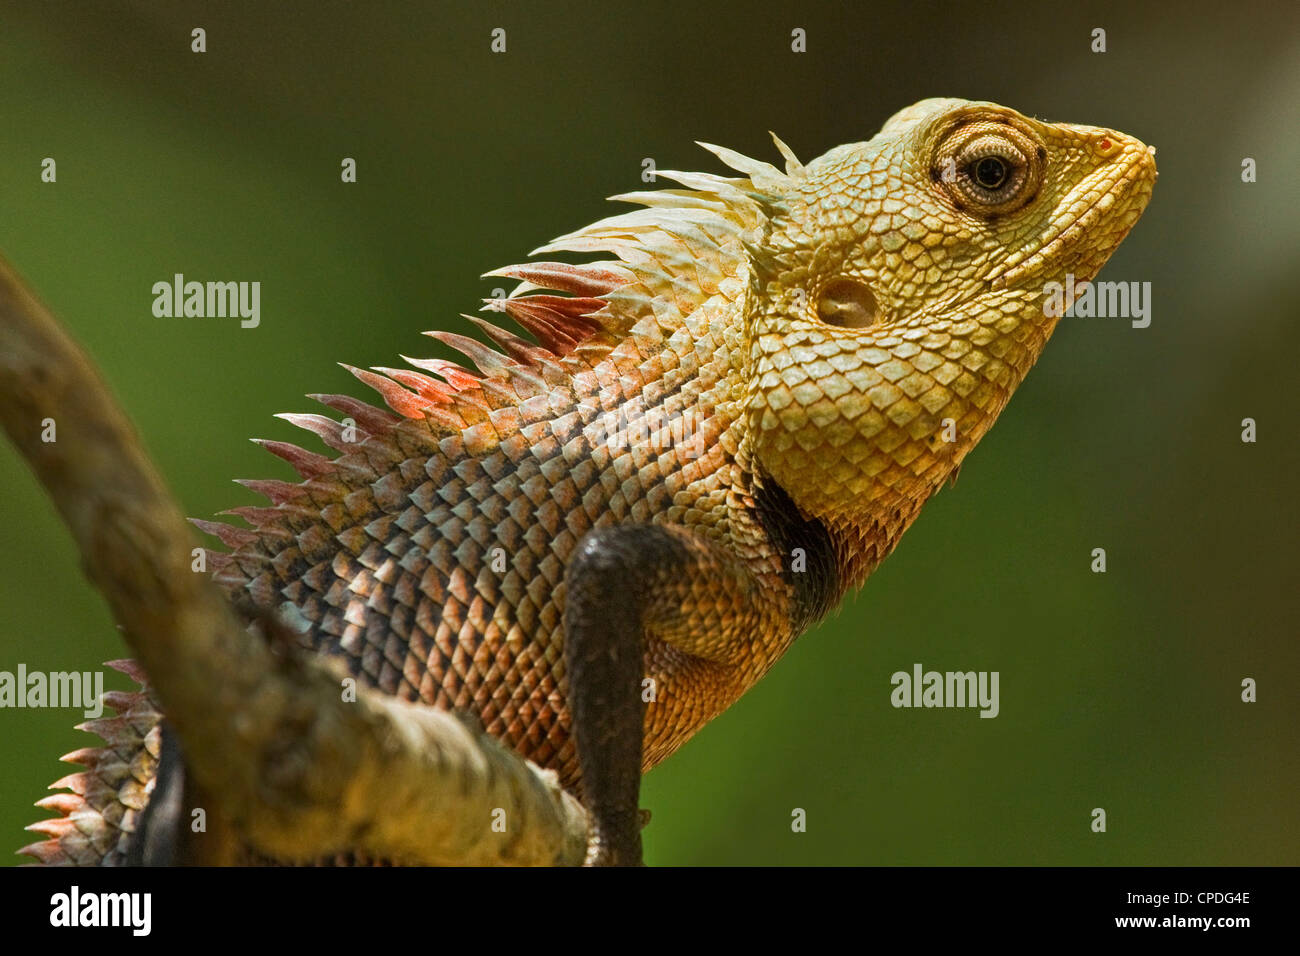 Common Garden Lizard (Calotes versicolor), an Agamid lizard seen in ...